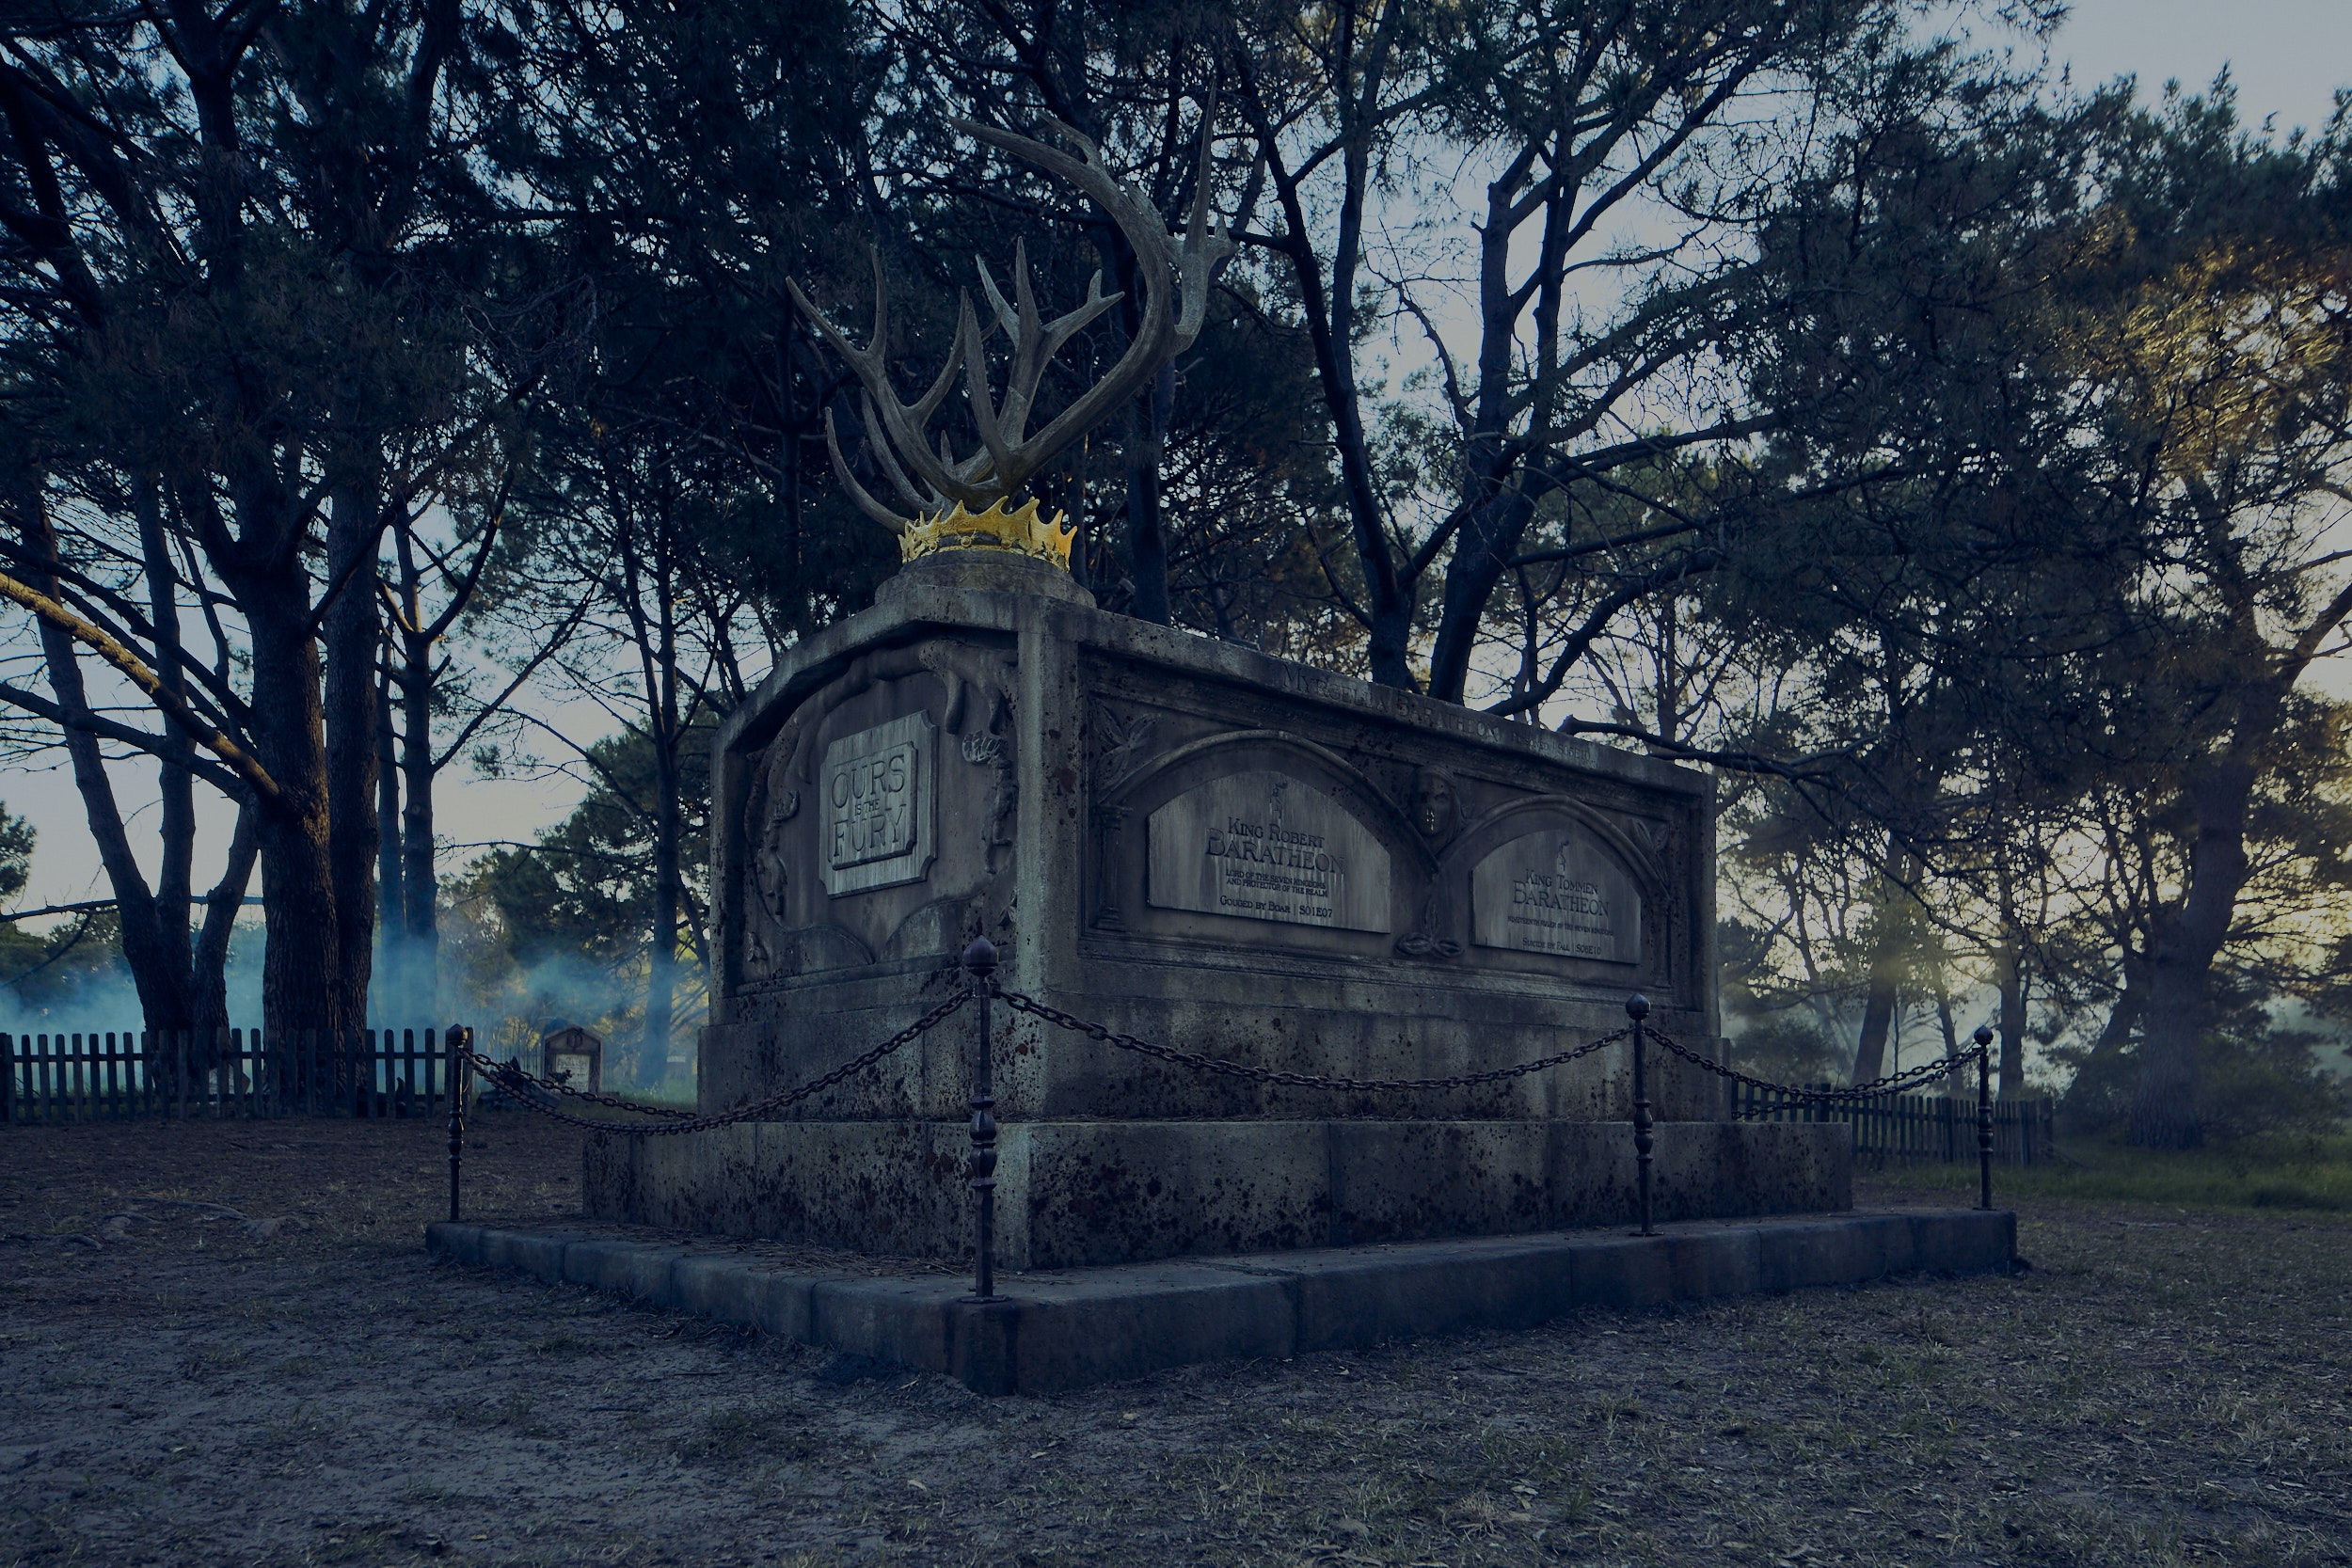 ENZO. PREVIS ARTIST. PRODUCTION DESIGNER. - Baratheon Mausoleum